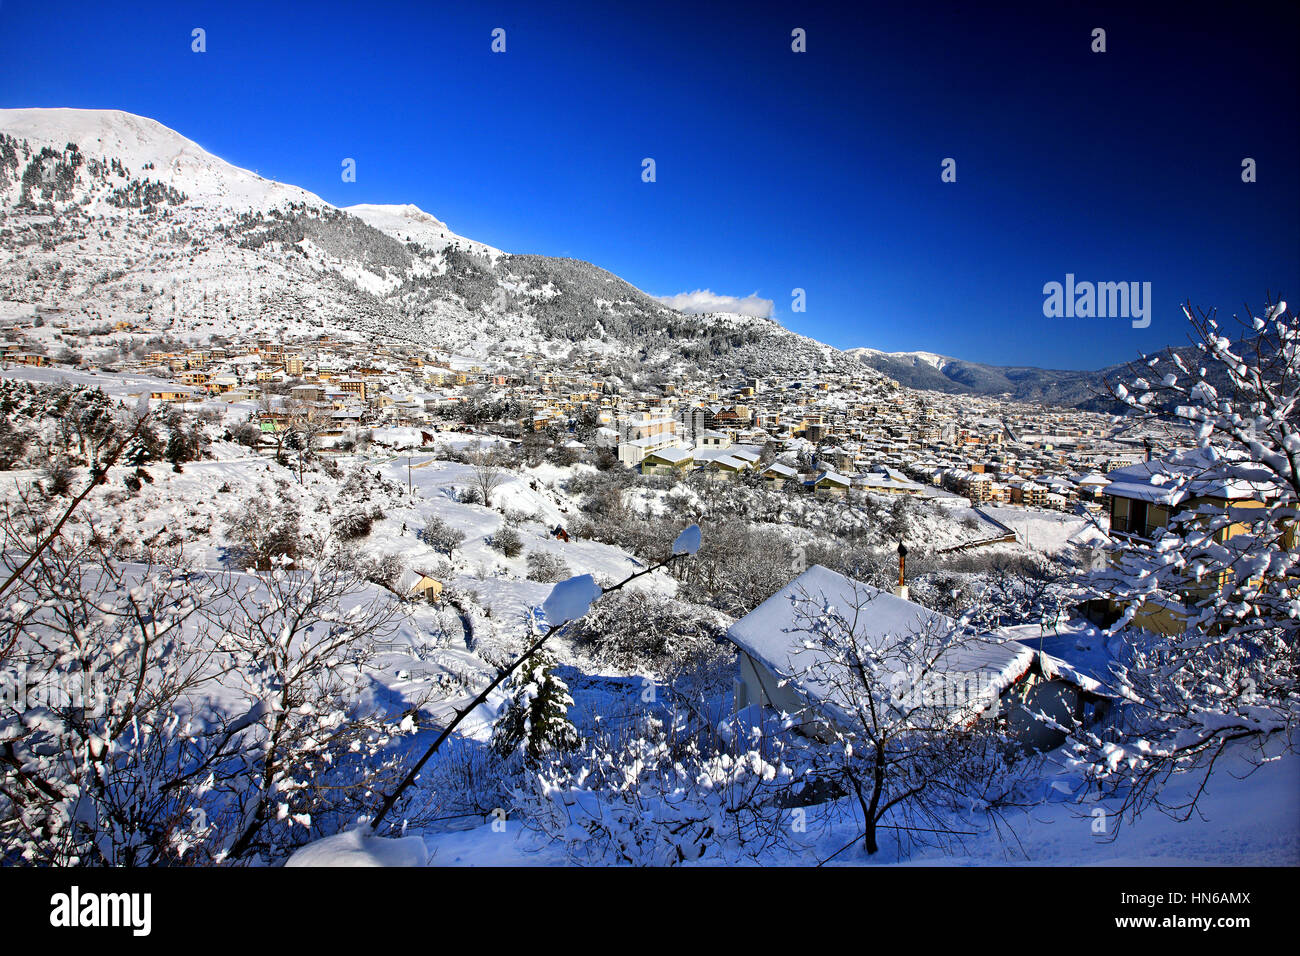 View of Karpenissi town and Velouchi (or 'Tymphristos') mountain. Karpenissi is the 'capital' of - Stock Image